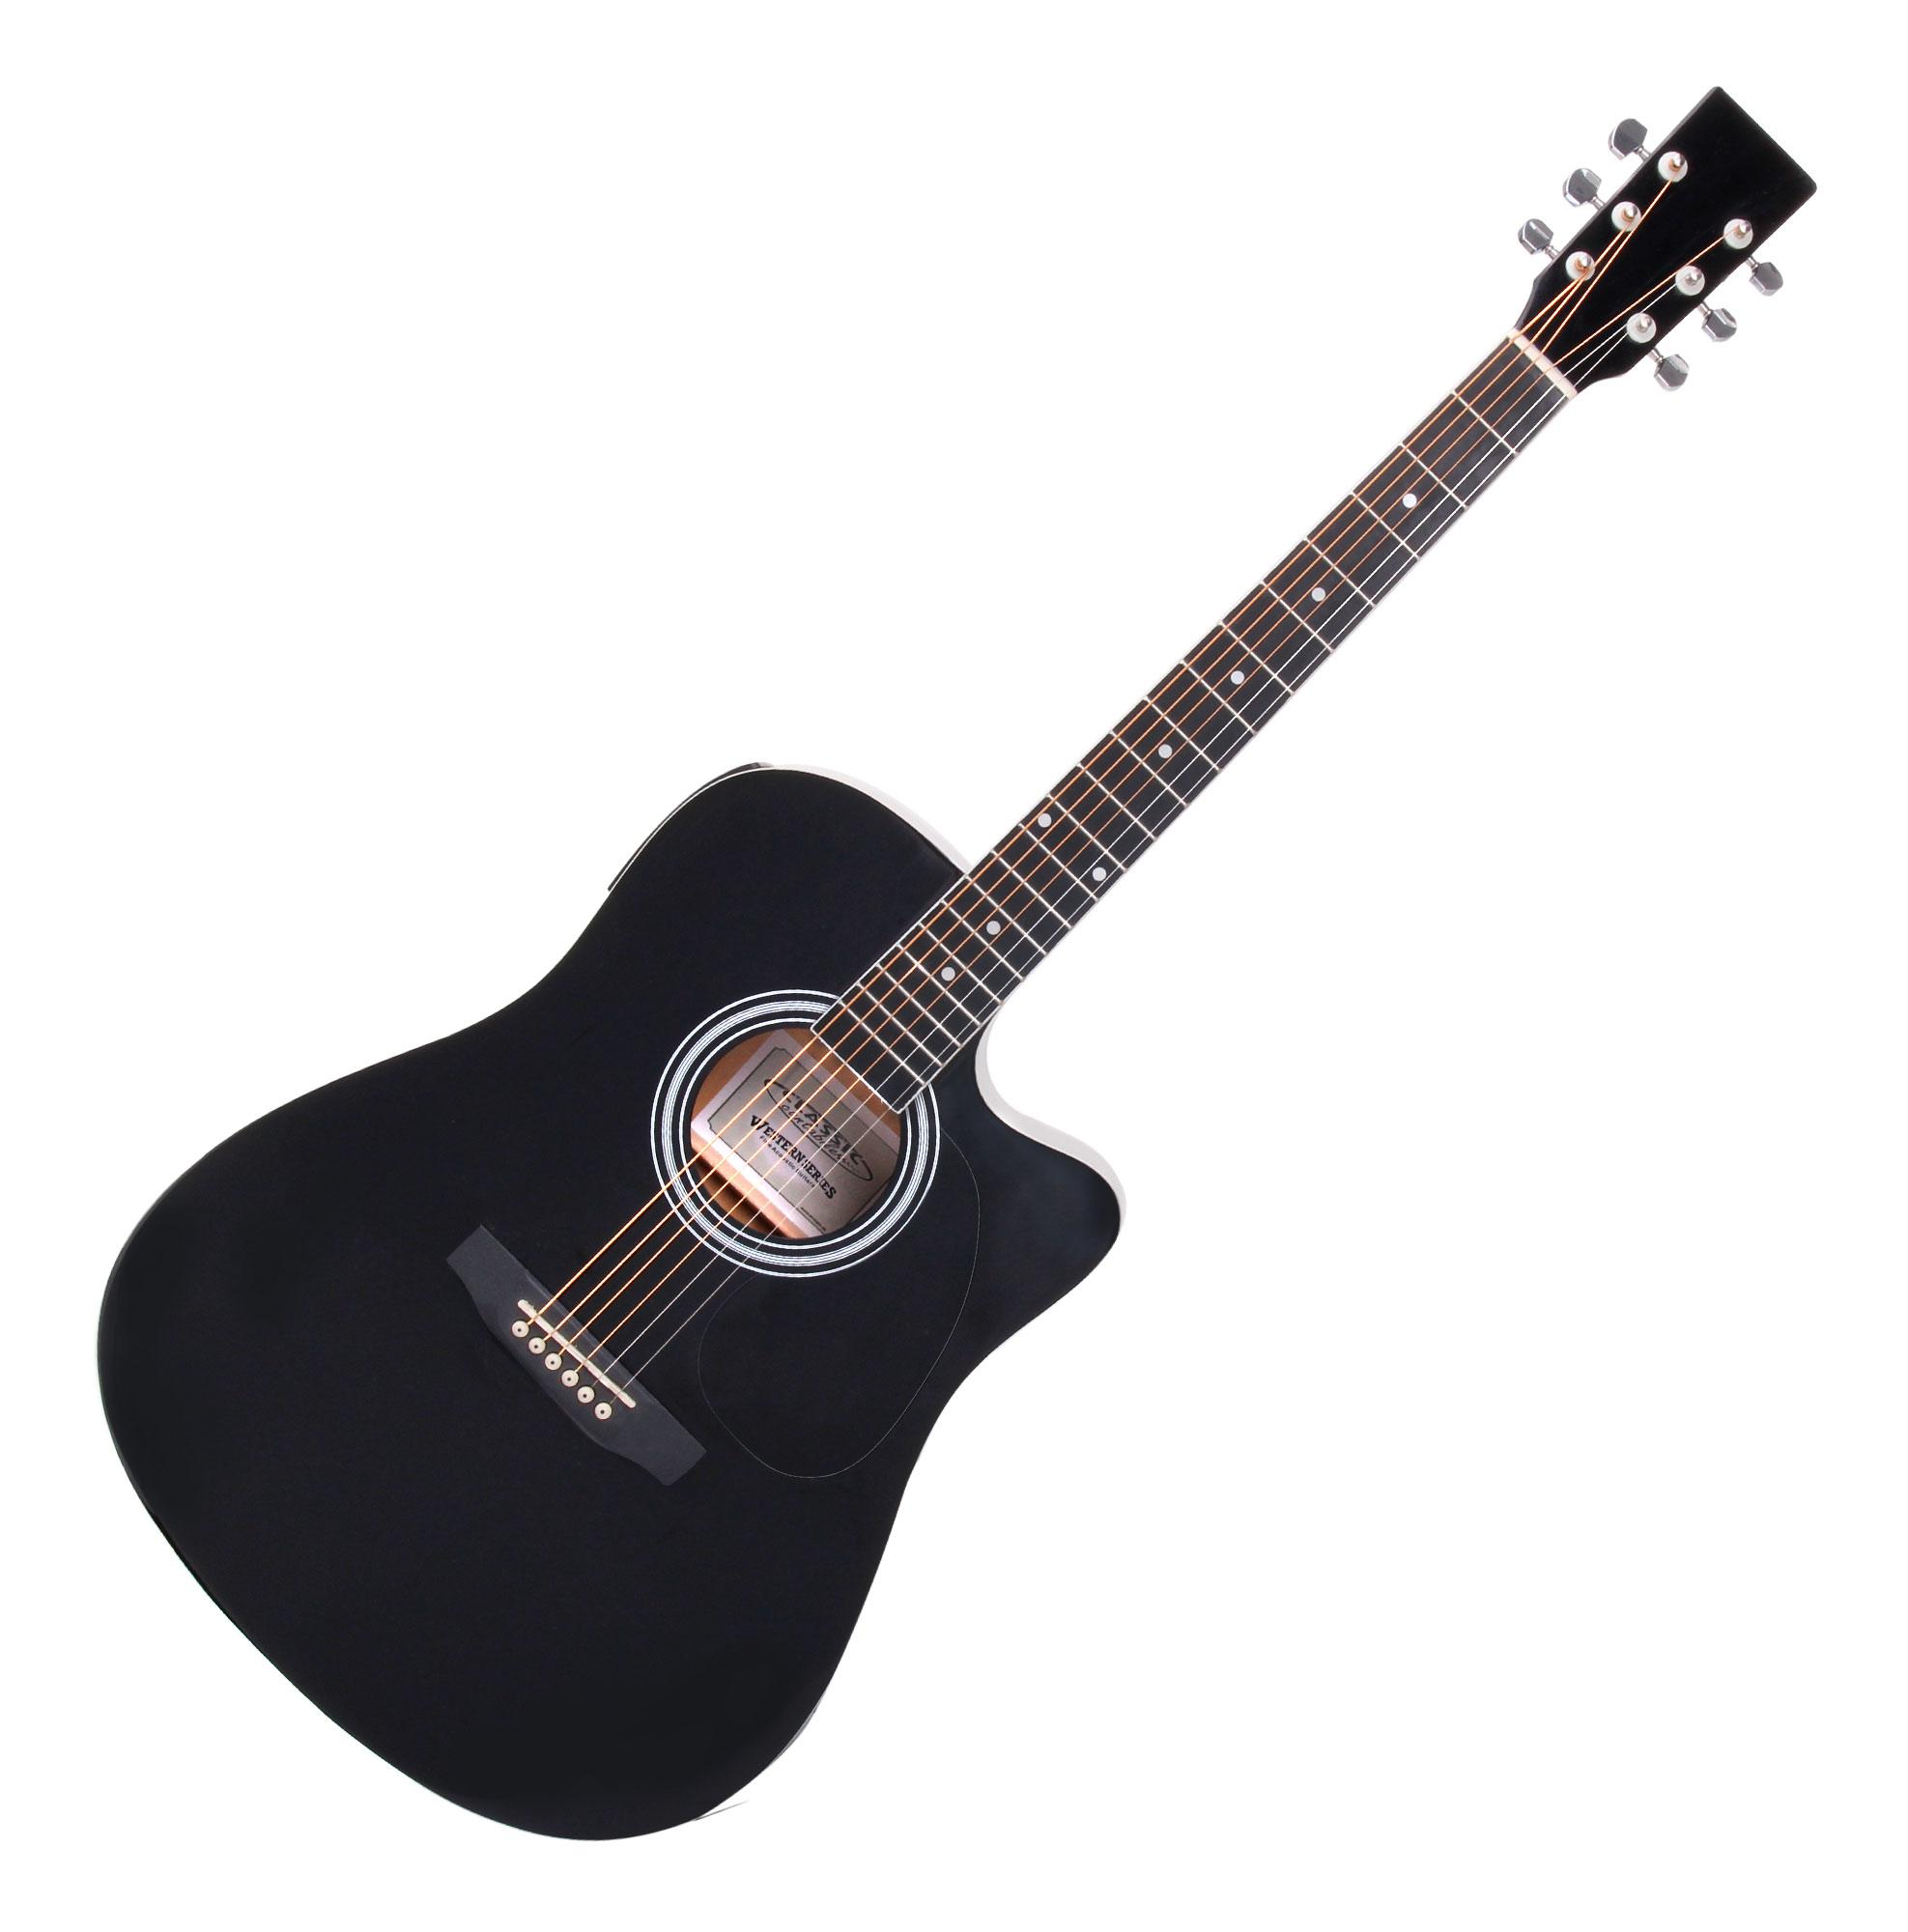 Classic Cantabile Ws 10bk Ce Acoustic Guitar Black With Pickup